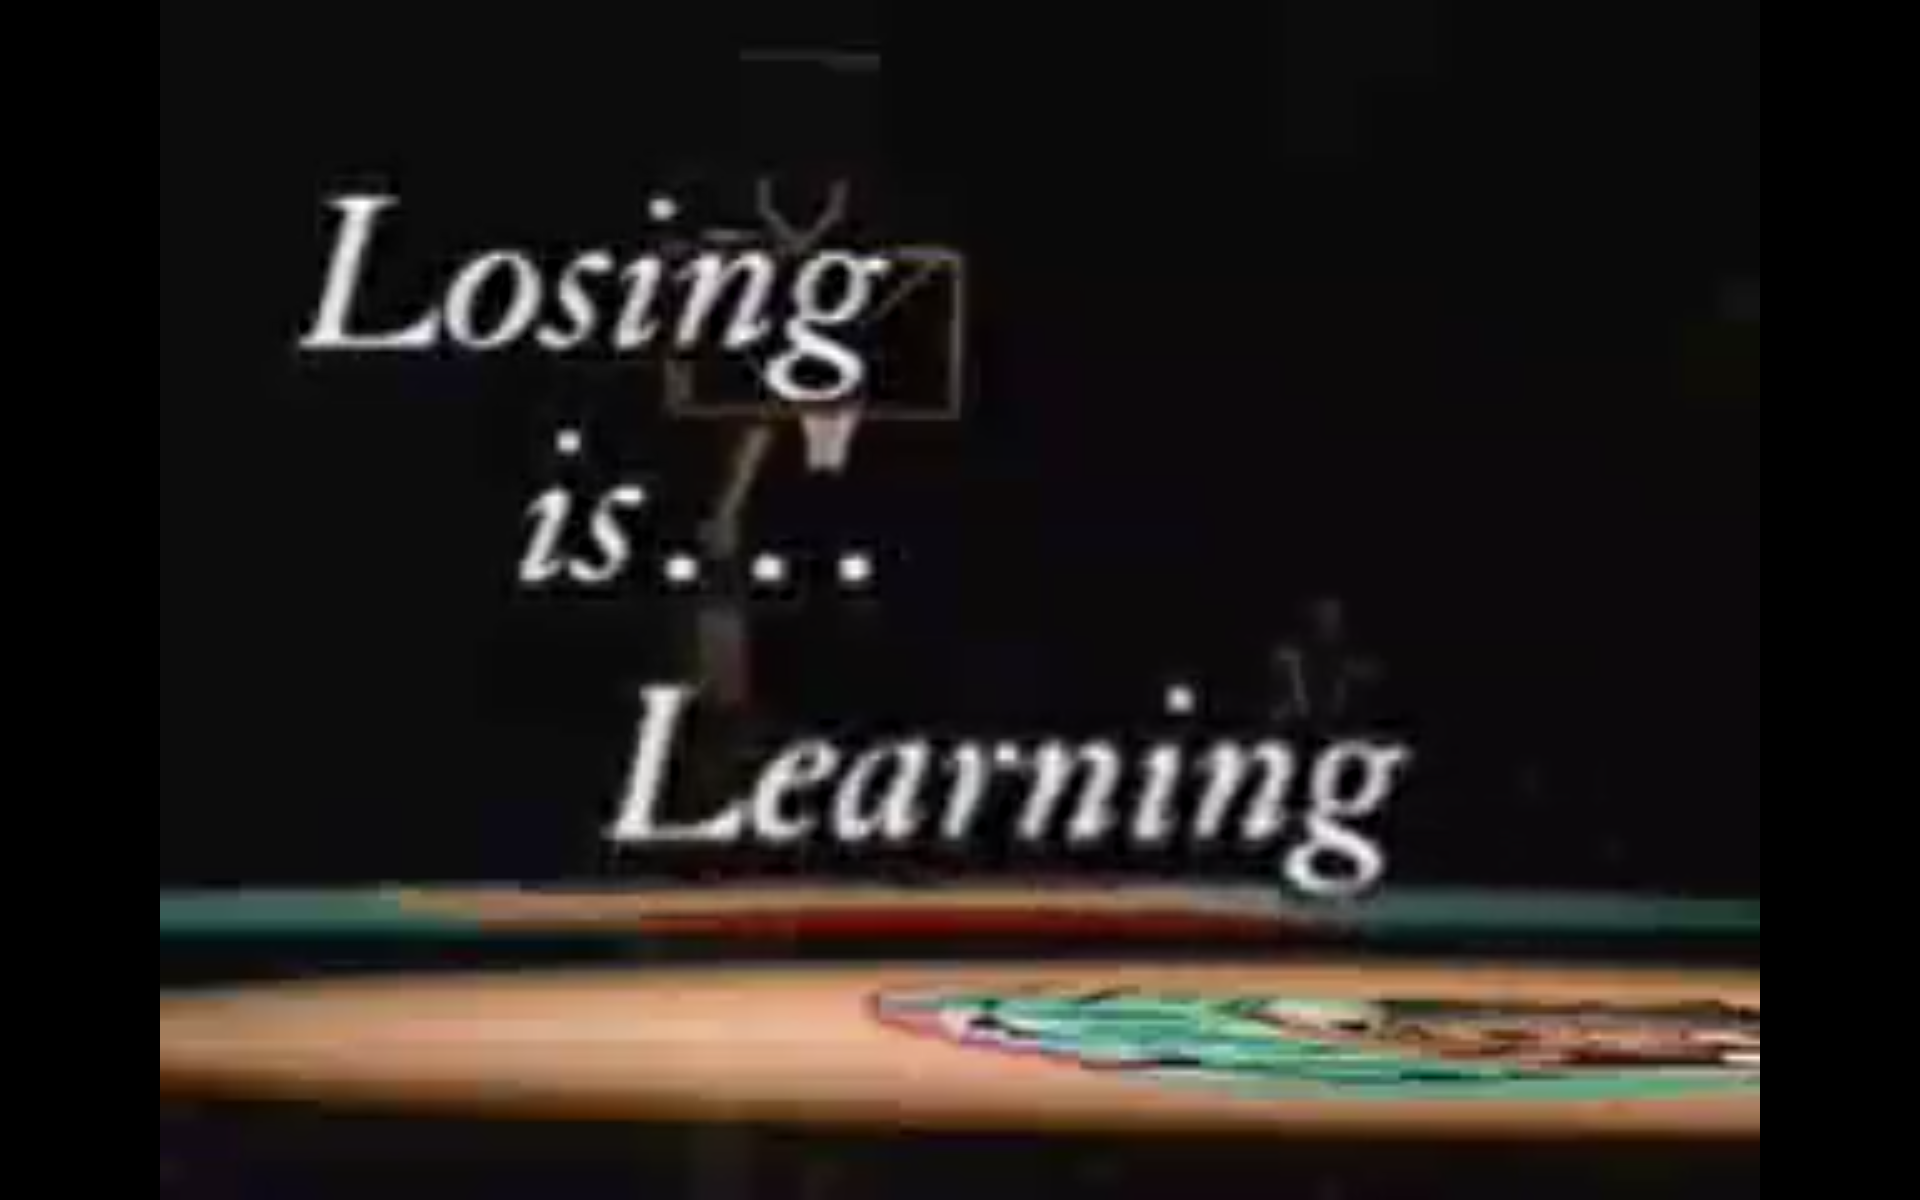 Losing is Learning